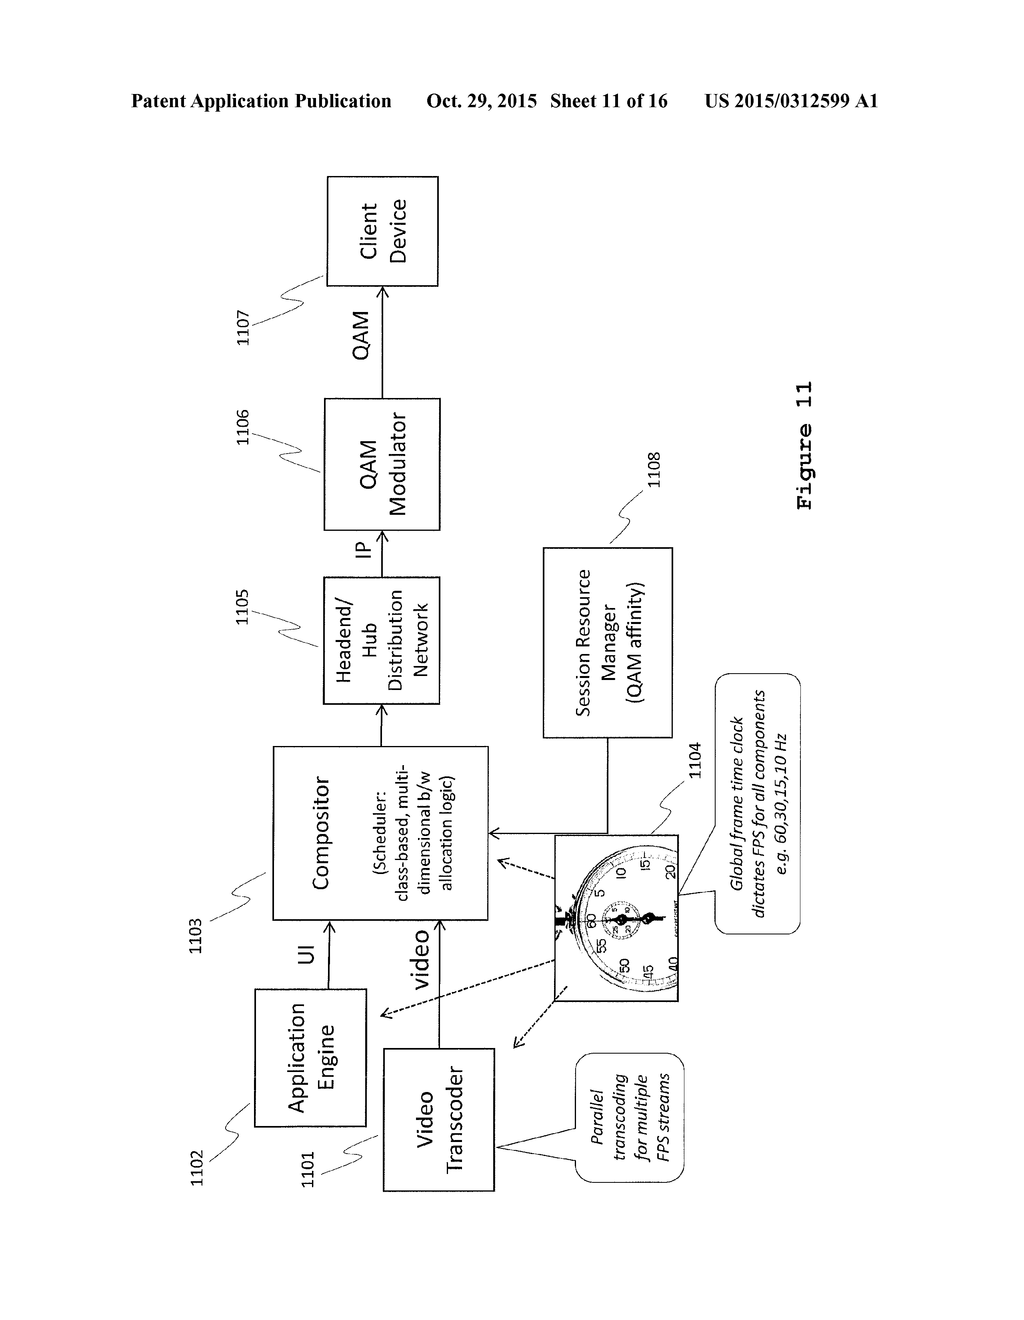 Intelligent Multiplexing Using Class Based Multi Dimensioned Logic Diagram Multiplexer Decision For Managed Networks Schematic And Image 12